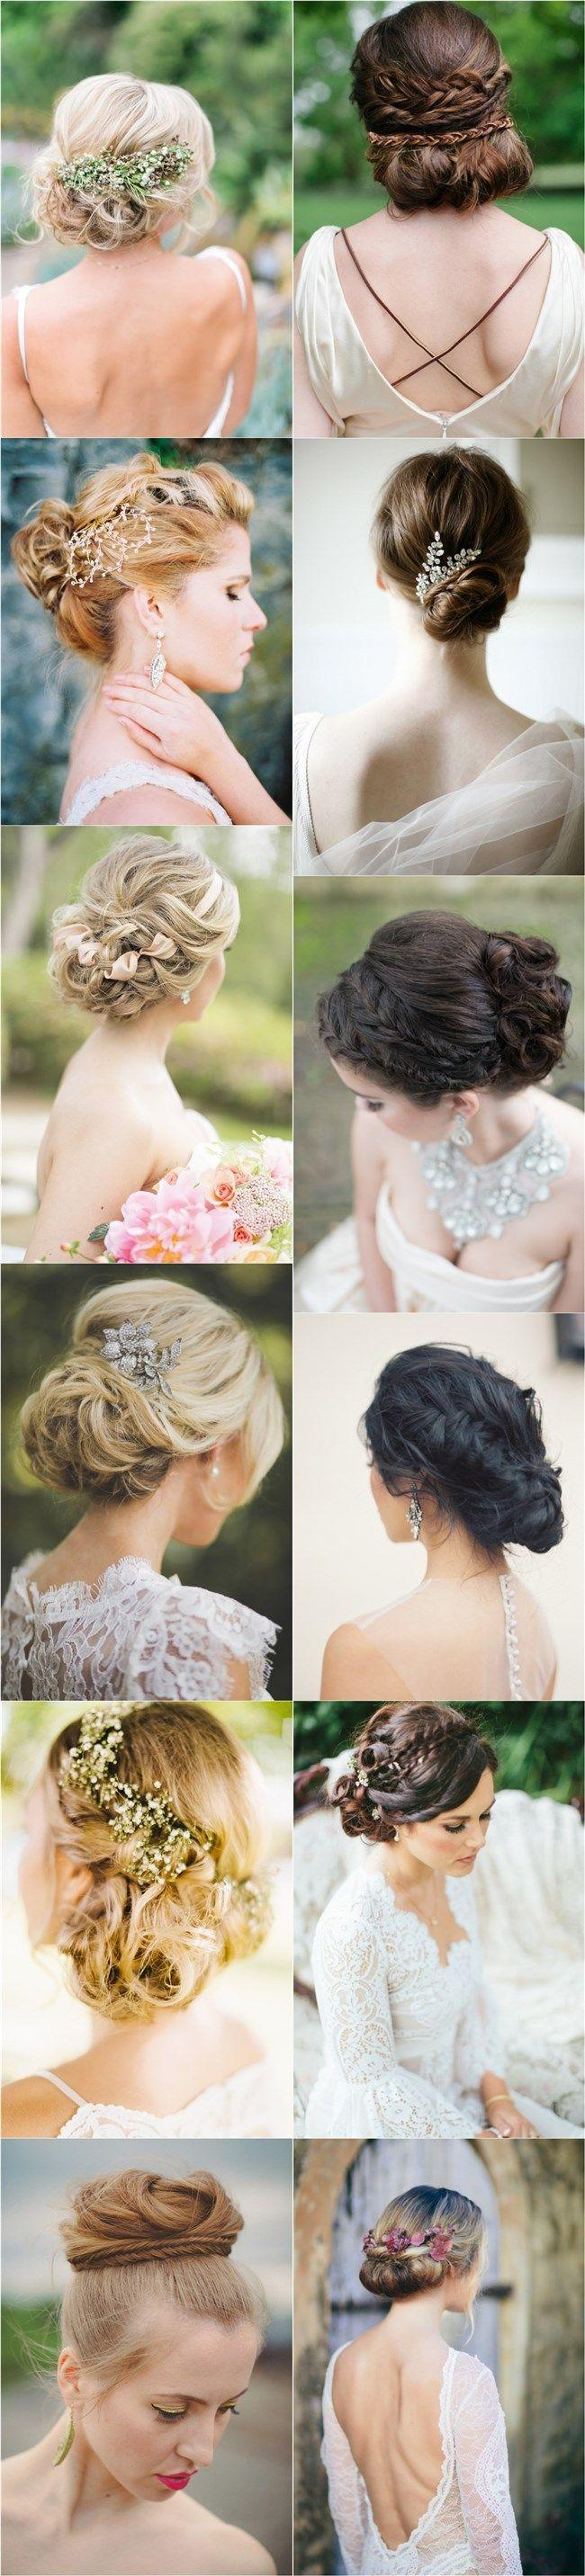 Hochzeit - 30 Fabulous Most Pinned Updos For Wedding (with Tutorial)